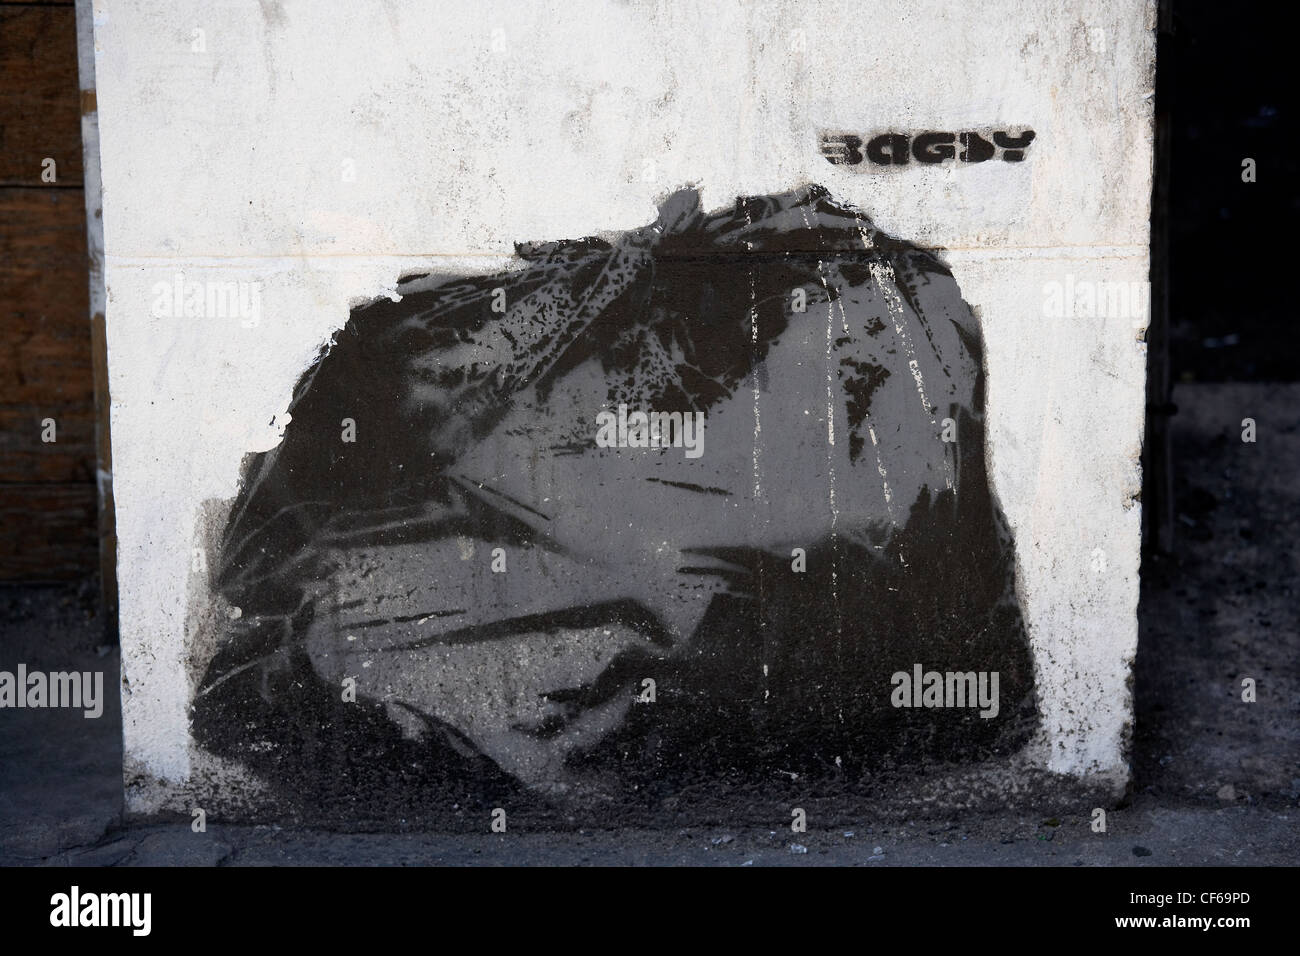 Stencil graffiti of a bin liner on a wall in Kingsland road. - Stock Image